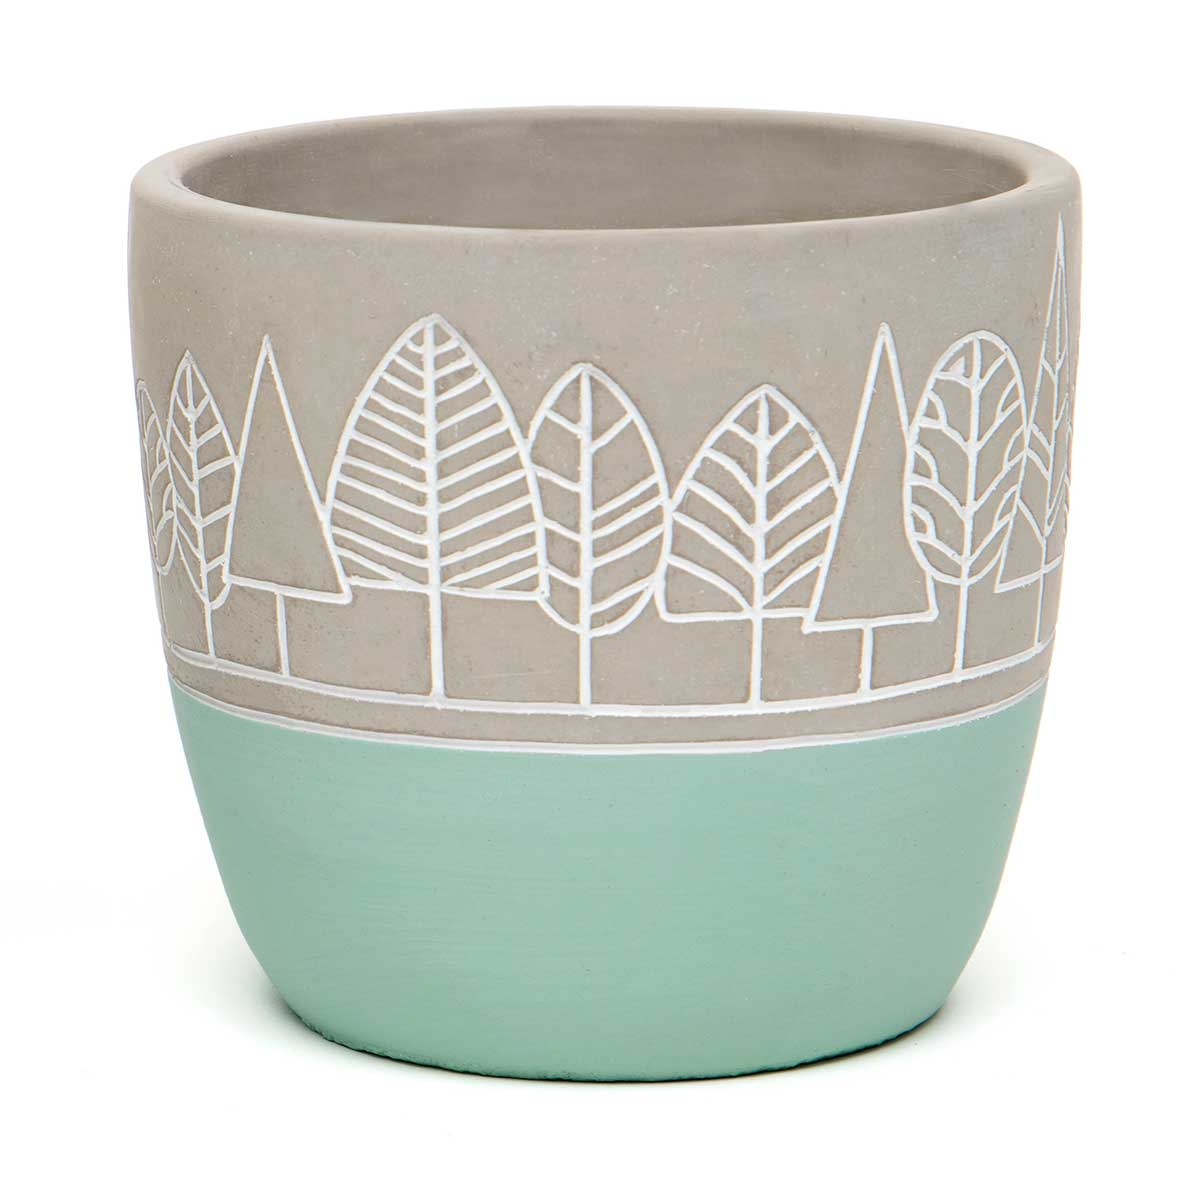 "TREE DESIGN CONCRETE POT WITH TEAL BOTTOM LARGE 5.5""x5"""